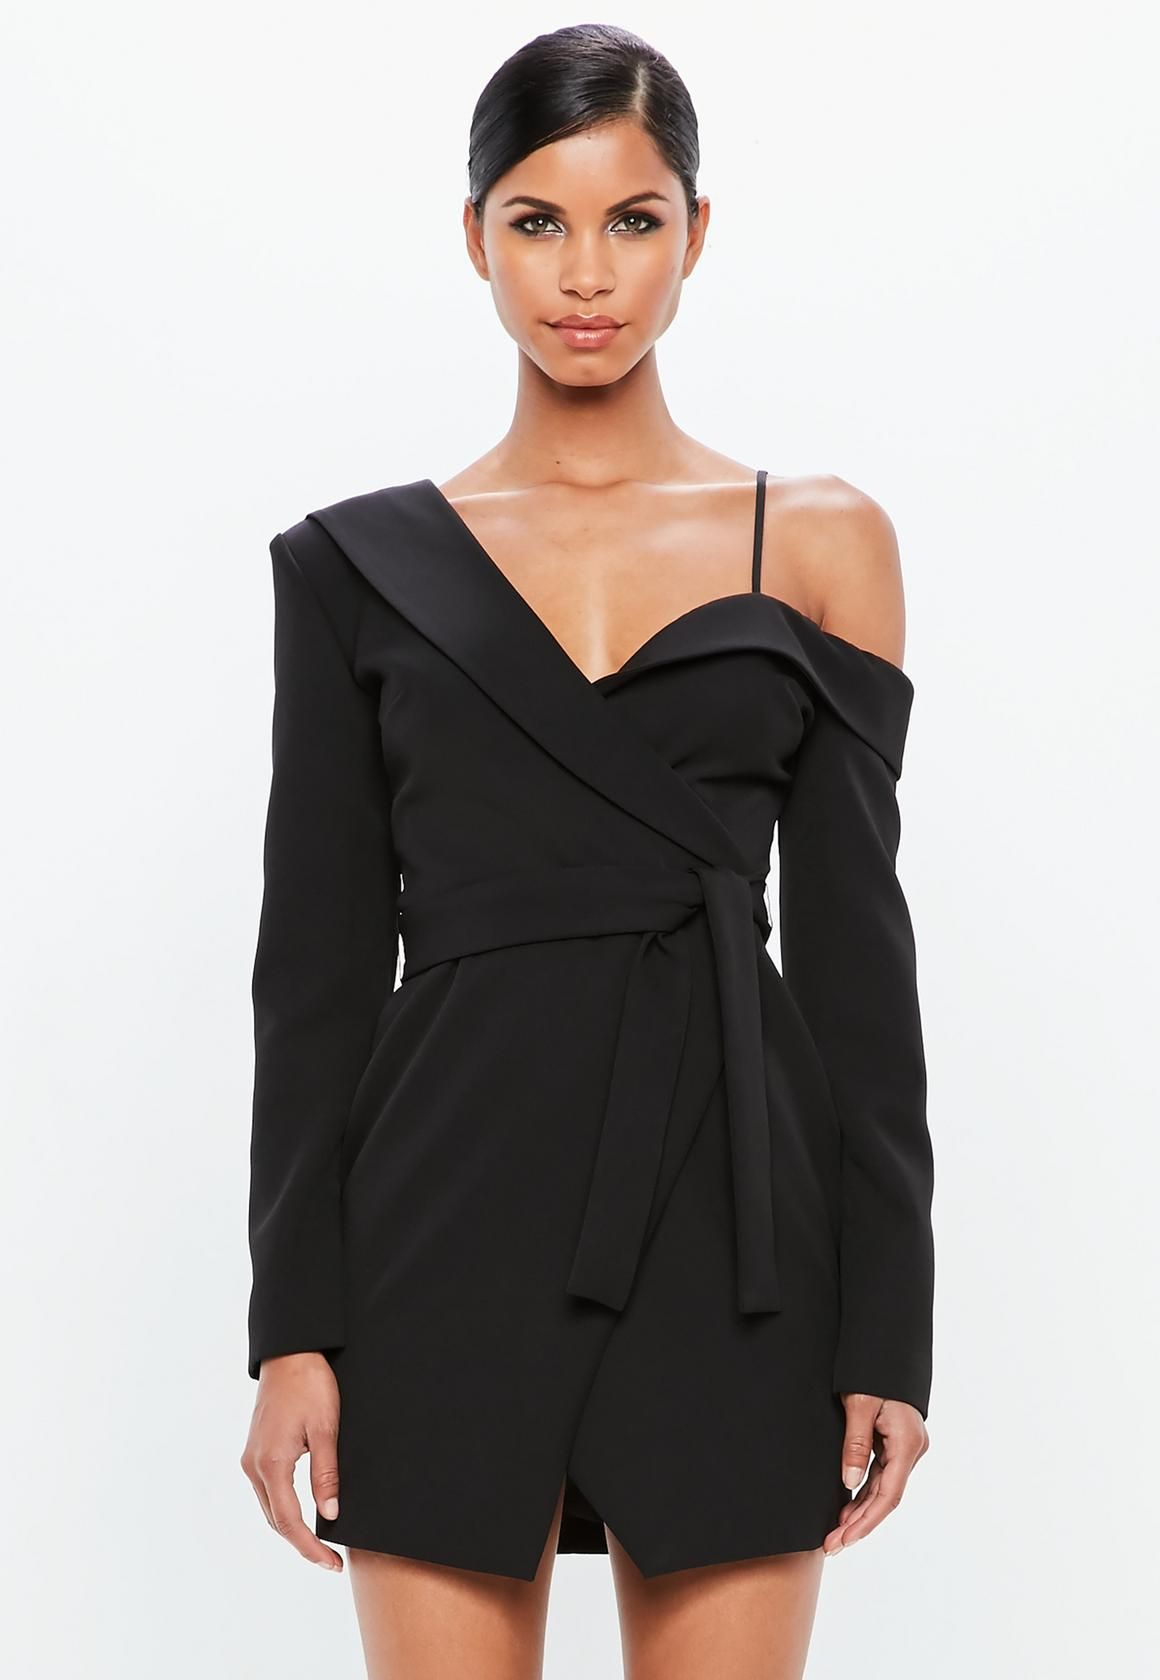 Missguided - Peace Love Black One Shoulder Tuxedo Mini Dress ... 2c464d20655f1